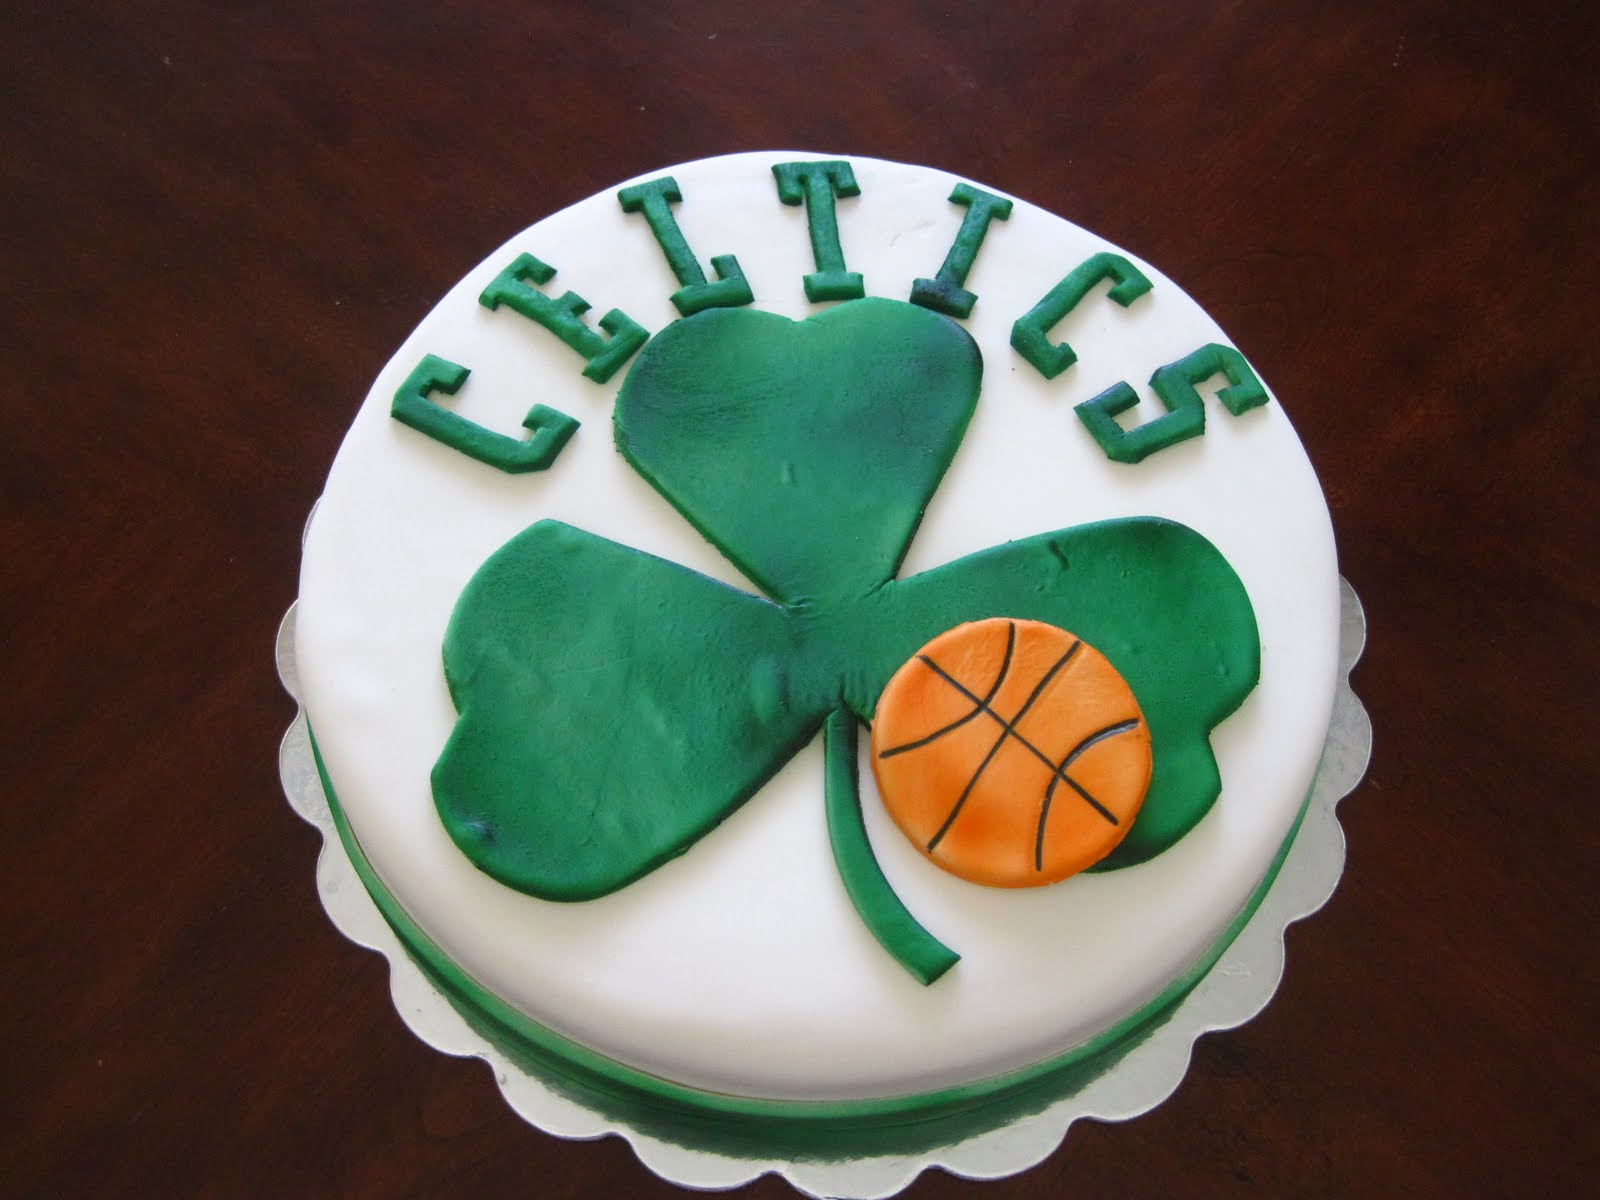 Megans Creations Boston Celtics Cake And Headstone Grave Cake